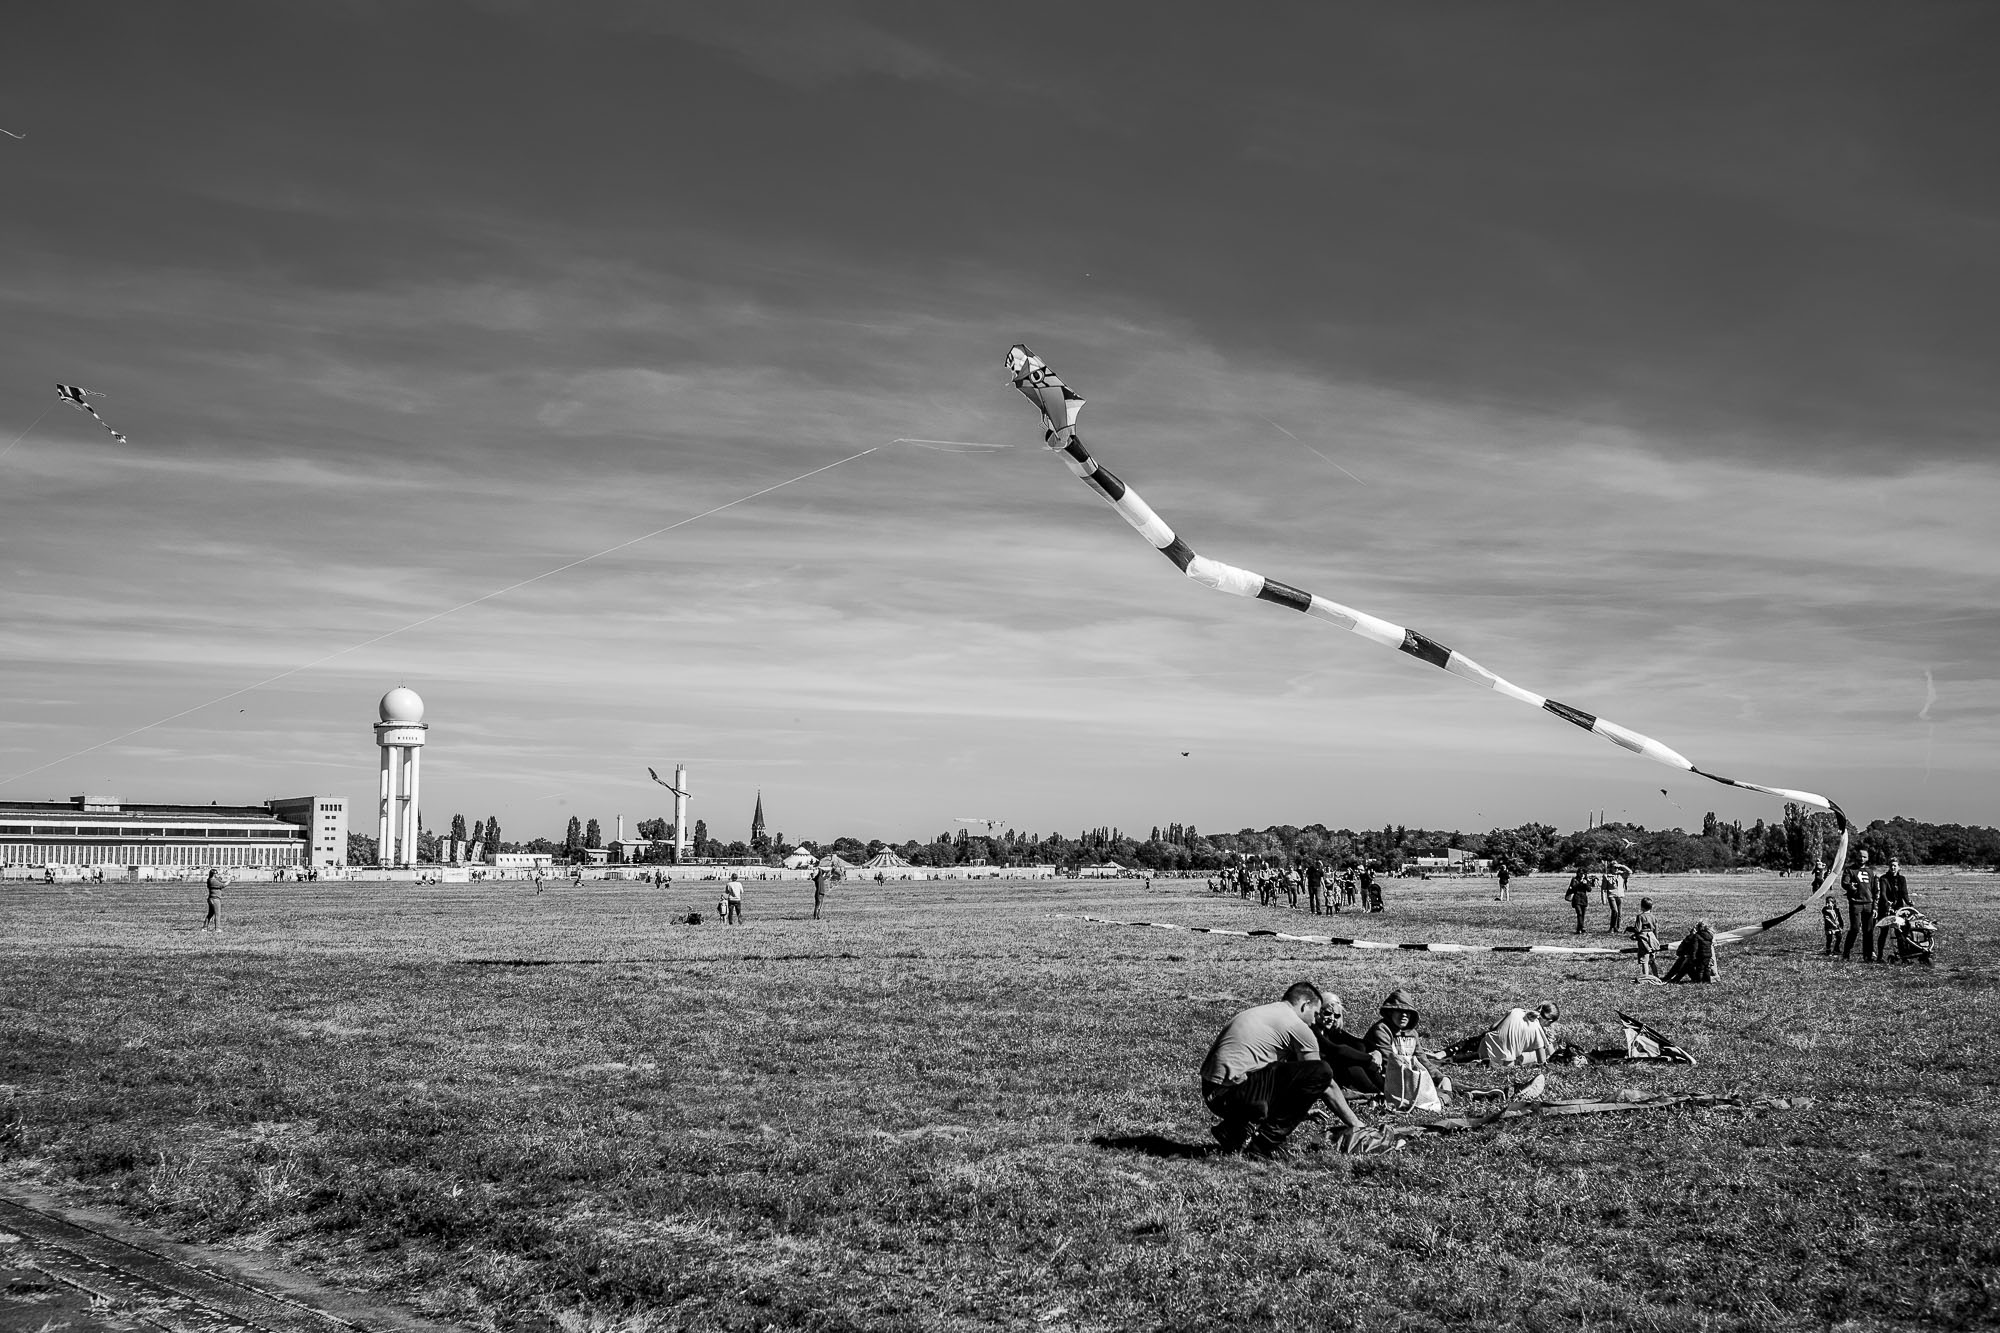 People sitting on the gras, watching a huge kite above them